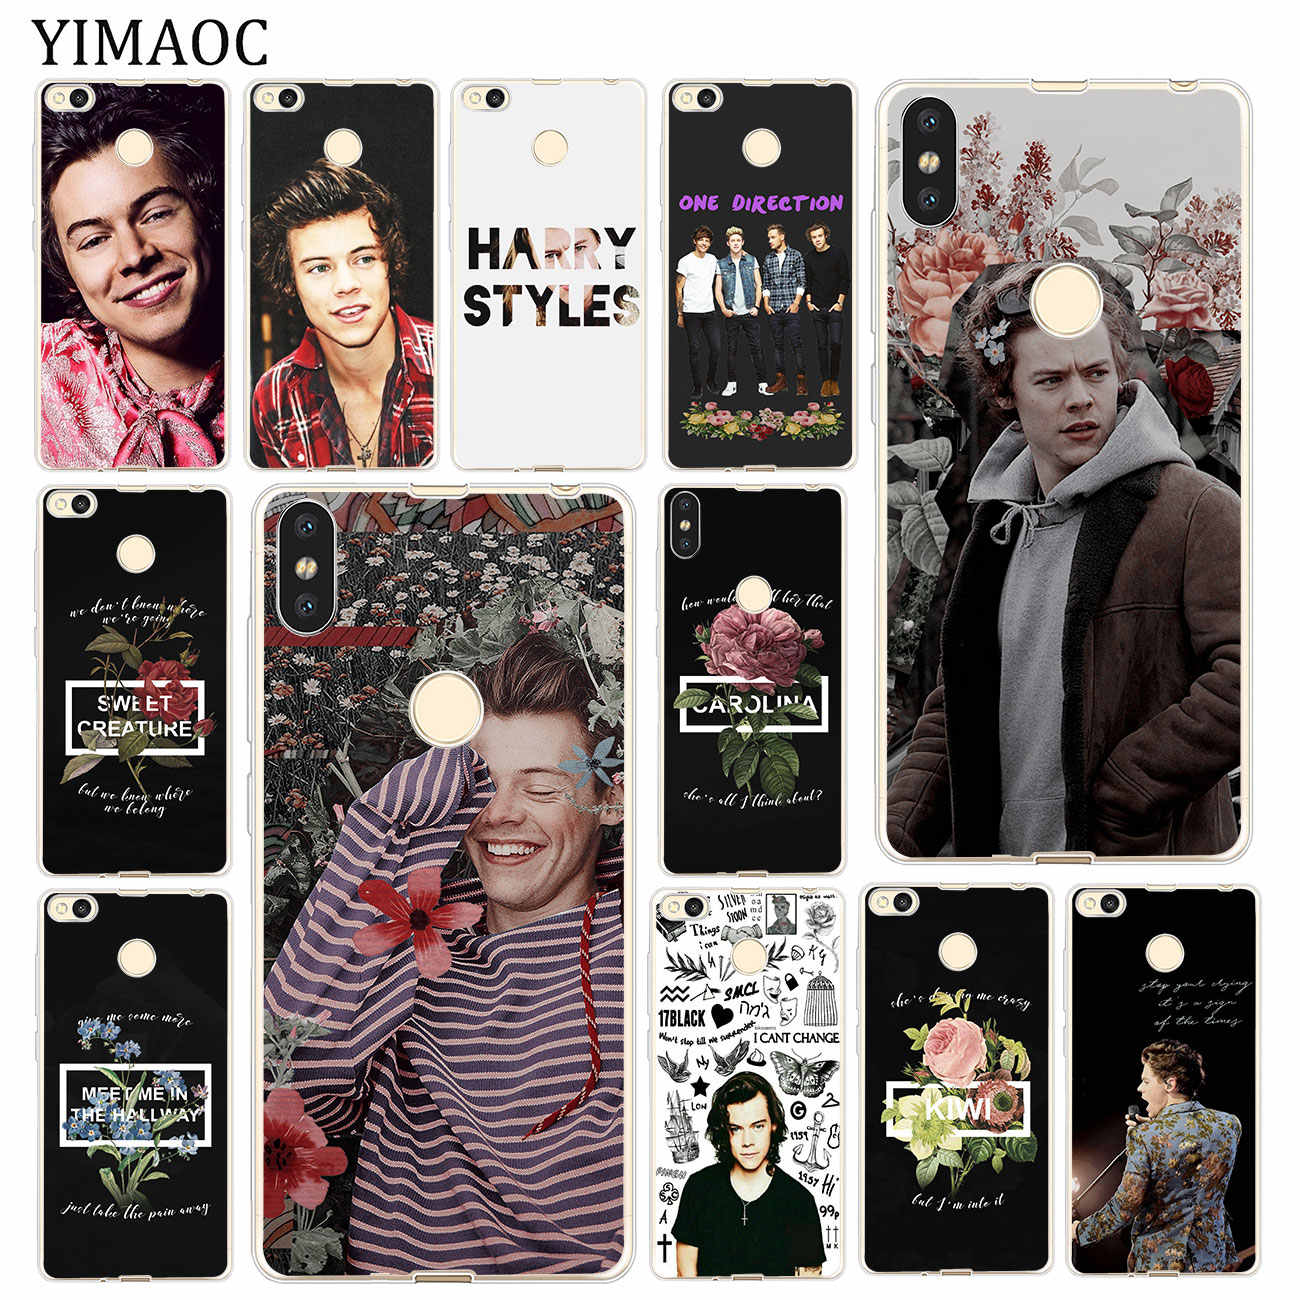 Harry Styles Dos One Direction YIMAOC 1D Soft Case para Xiao mi mi mi Vermelho 7A 6A 4A 4X S2 K20 IR Nota 7 5 6 Pro Plus 4 Capa